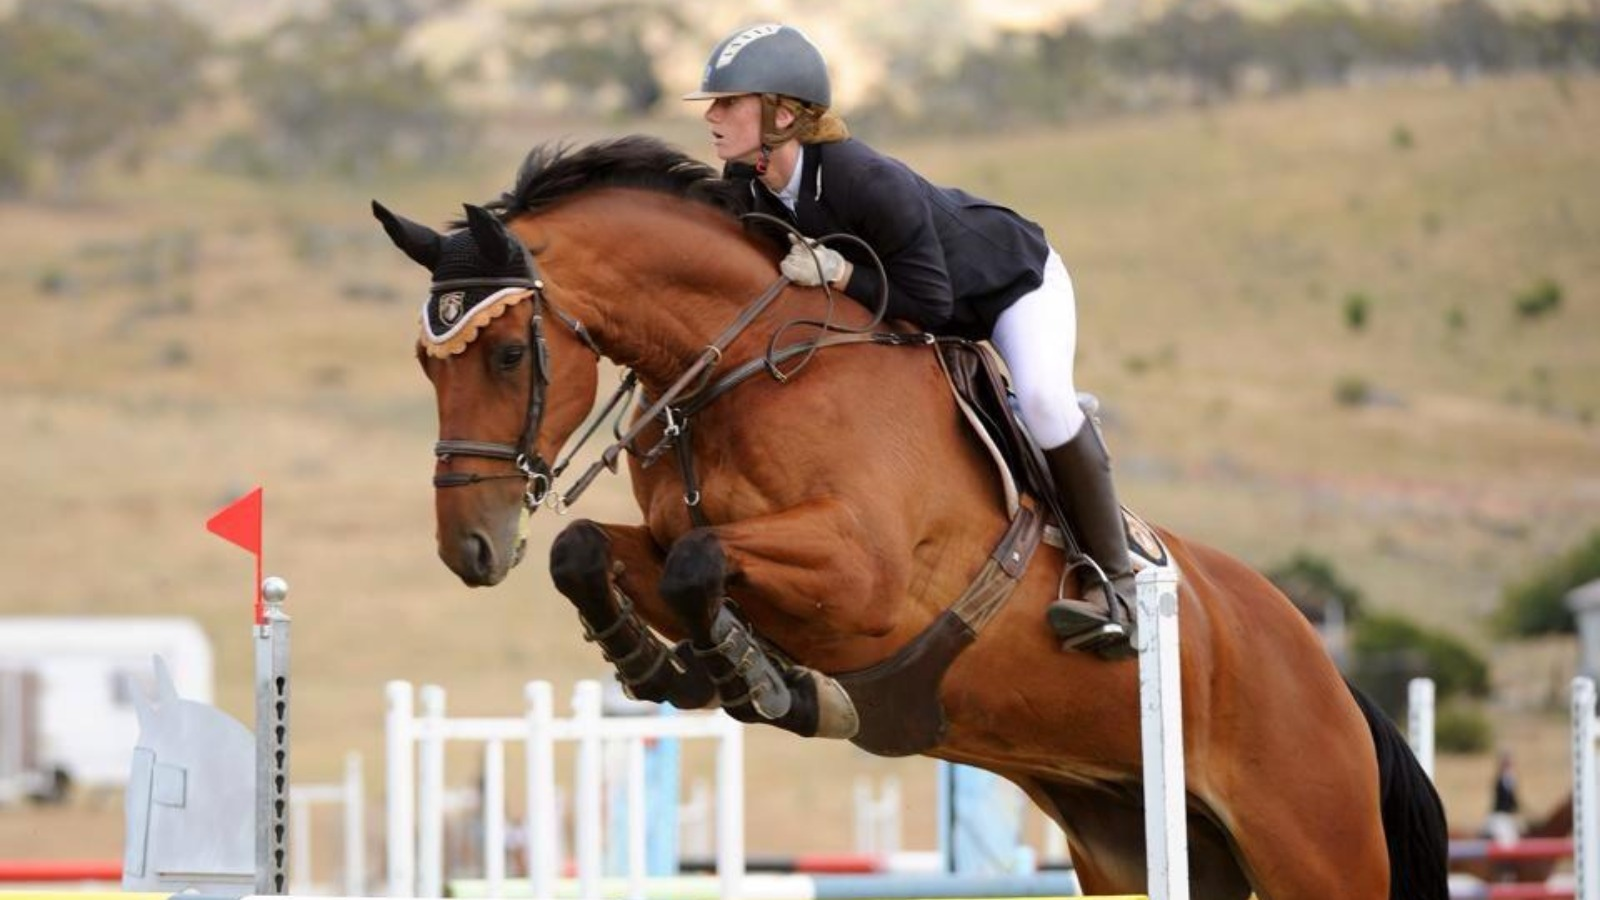 Olivia Inglis Equestrian Star 17 Crushed To Death By